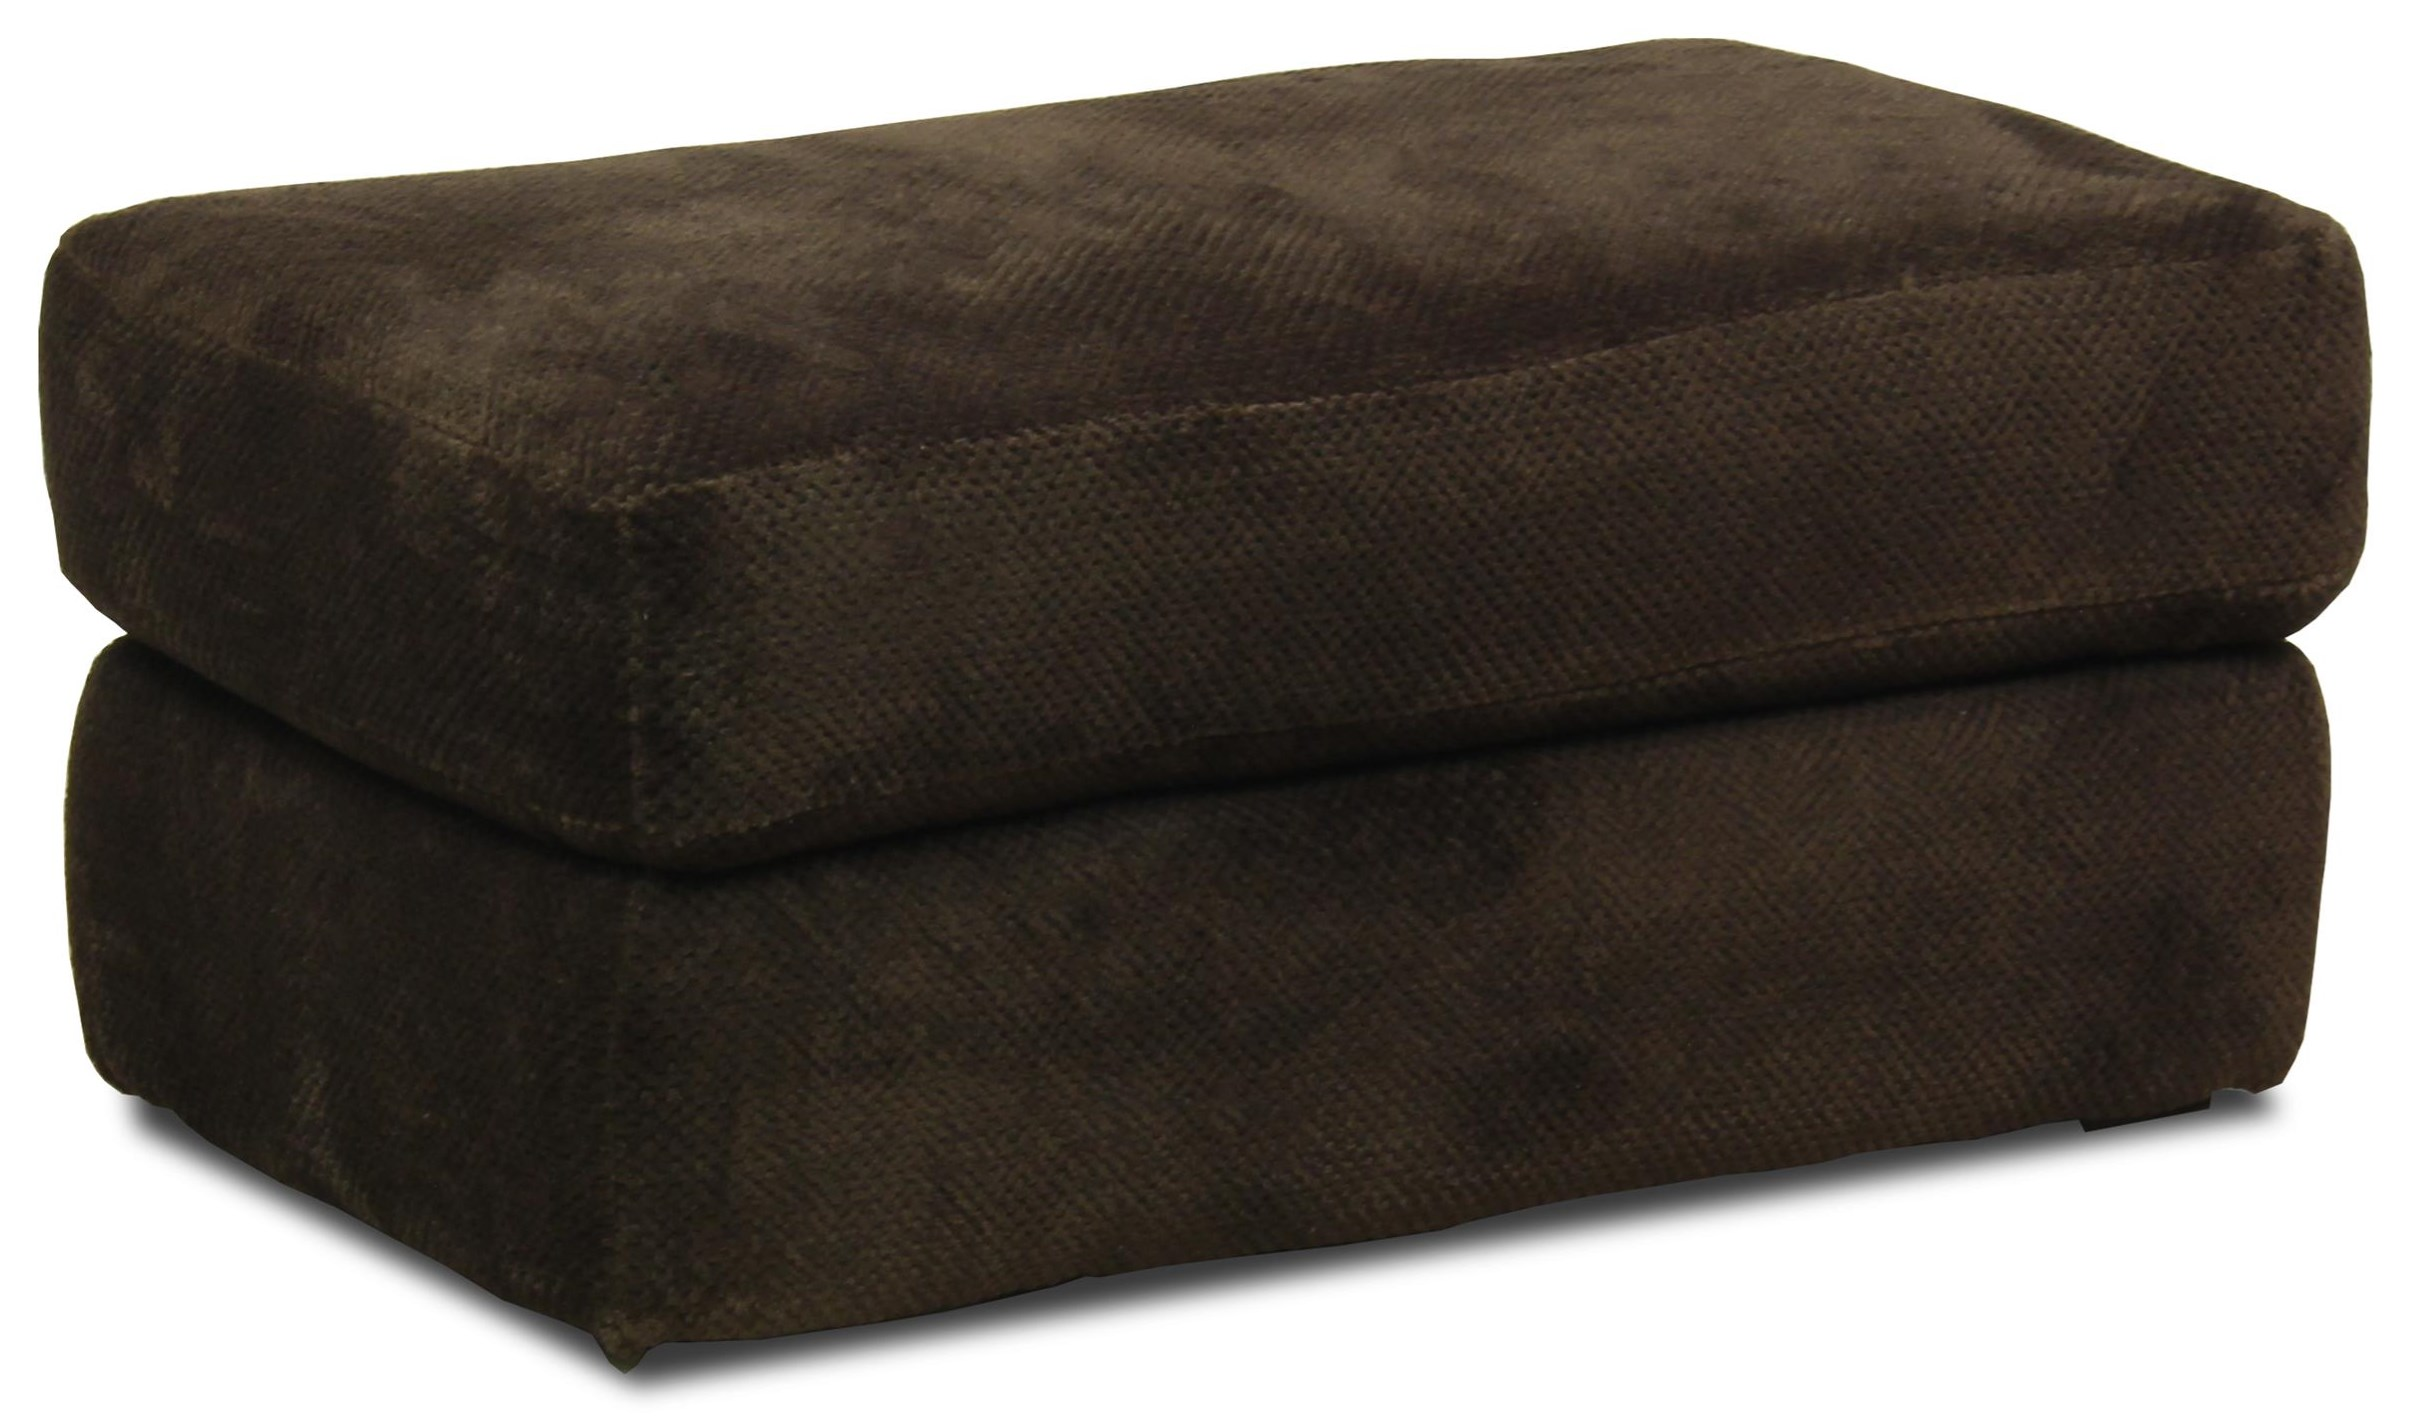 Midwood Ottoman by Comfy by Jackson at Ruby Gordon Home